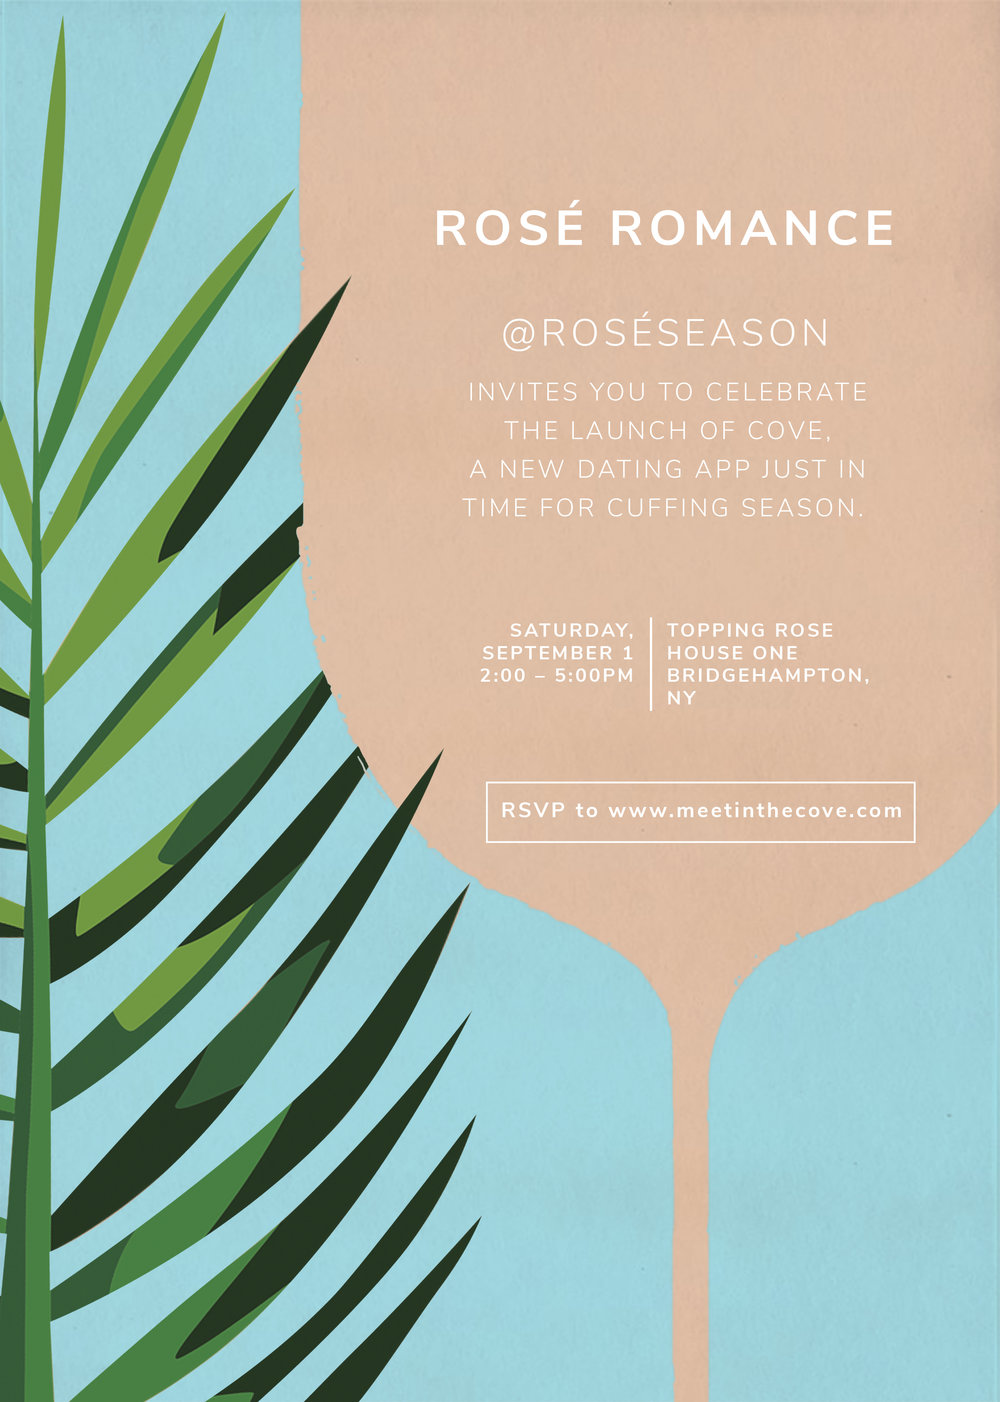 """Rosé Romance - With Labor Day approaching, this weekend marks the end of another epic summer in the Hamptons.Please join us at Topping Rose House in Bridgehampton this Saturday, September 1st from 2:00-5:00PM, for the launch of Cove, a new dating app for progressing deeper conversations, without losing time! """"Cuffing season"""" is almost here which means we are putting Cove'smatchmaking skills to the test as we say goodbye to summer. In the spirit of #RoséRomance, join us for speed dating, beats by DJ Rosé, a DIY flower bouquet station by East Olivia, and of course, curated Cove cocktails.Free admission.** Guests will need to sign a release form for Bravo TV's Summer House."""